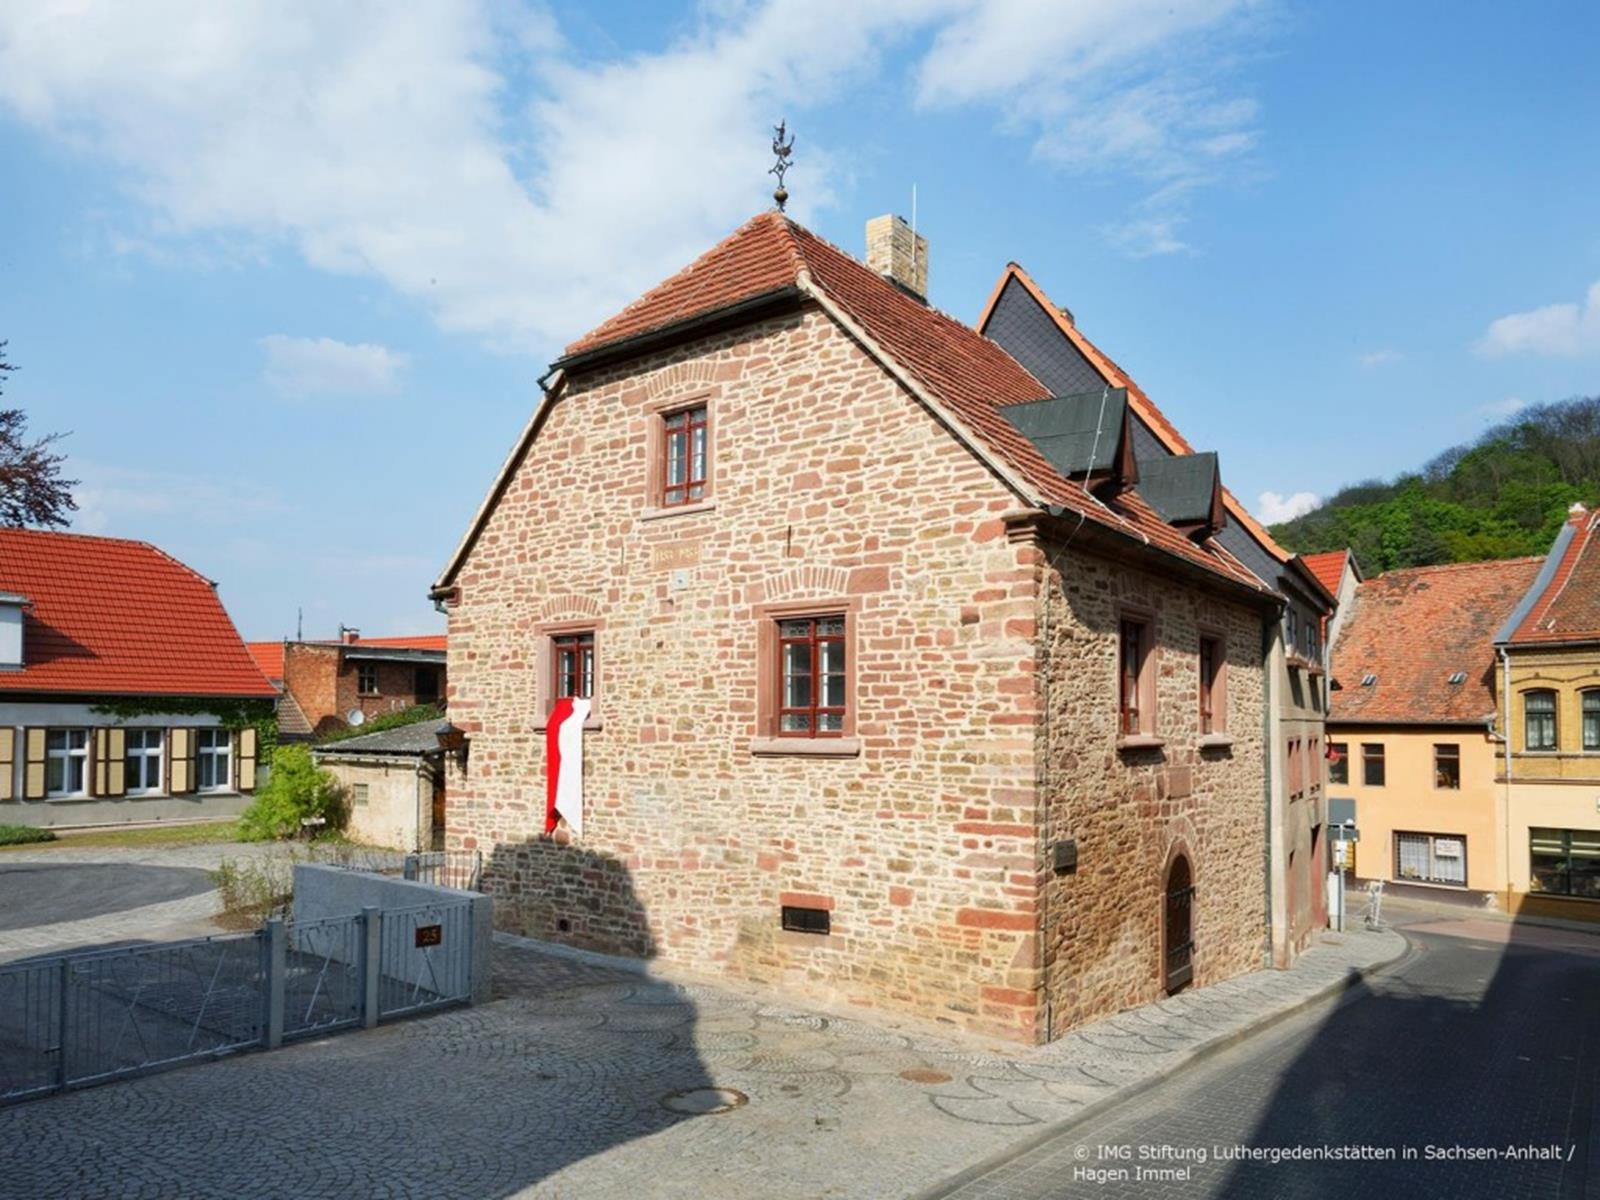 Luther's Parents' Home - Hagen Immel Luther Memorial Foundation Saxony-Anhalt